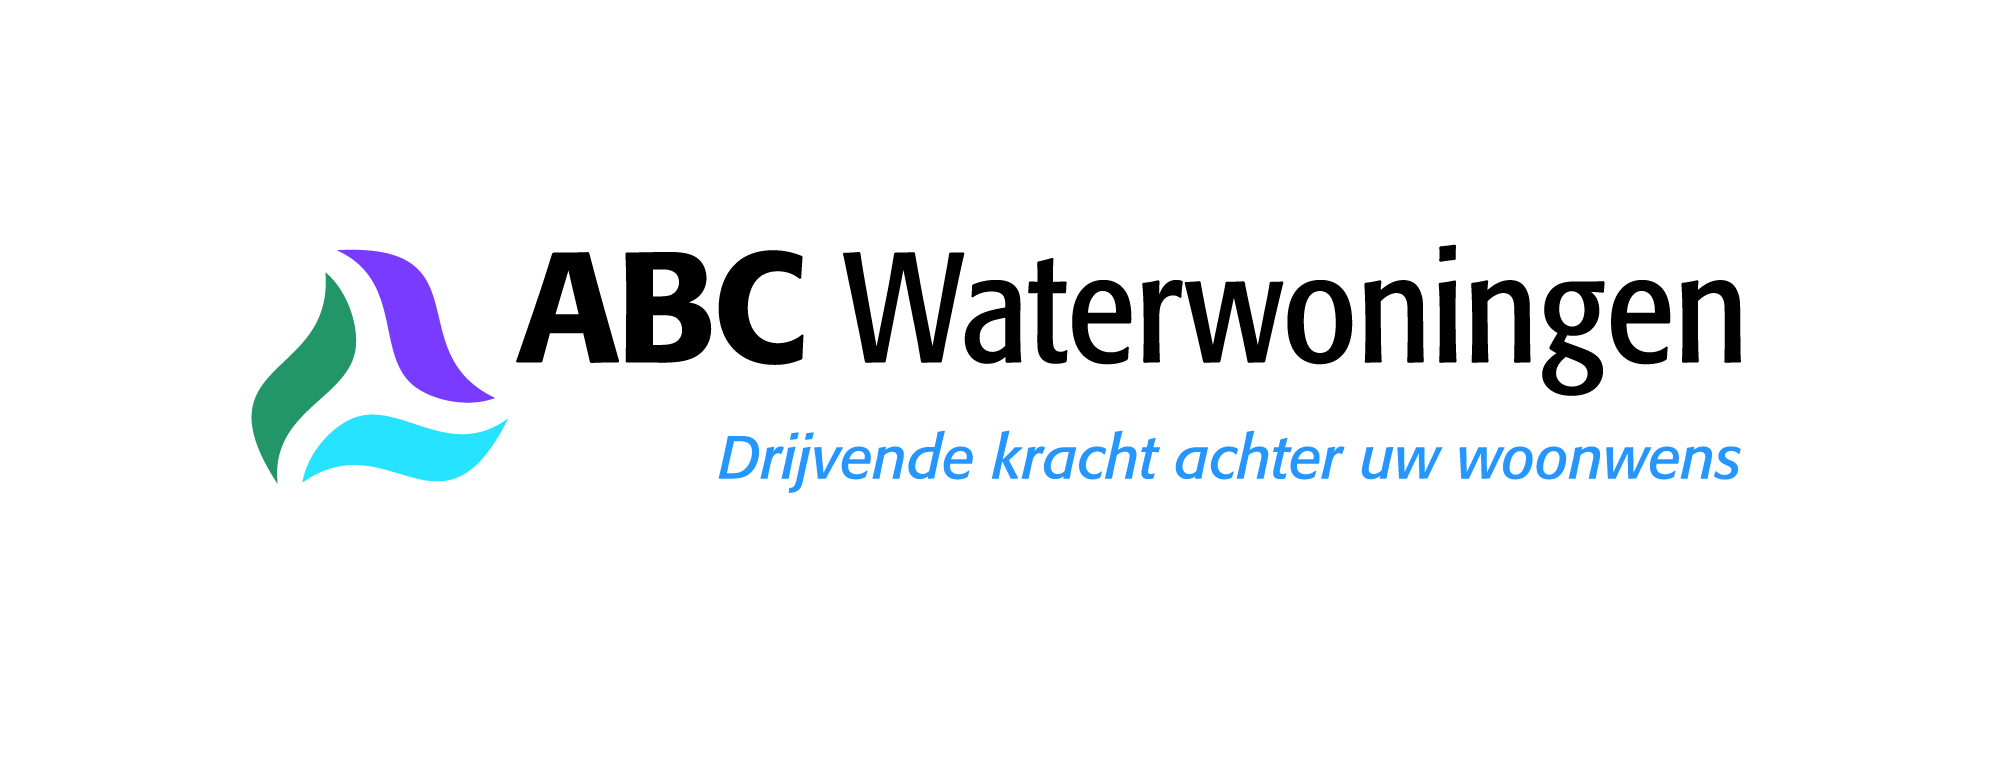 ABC waterwoningen